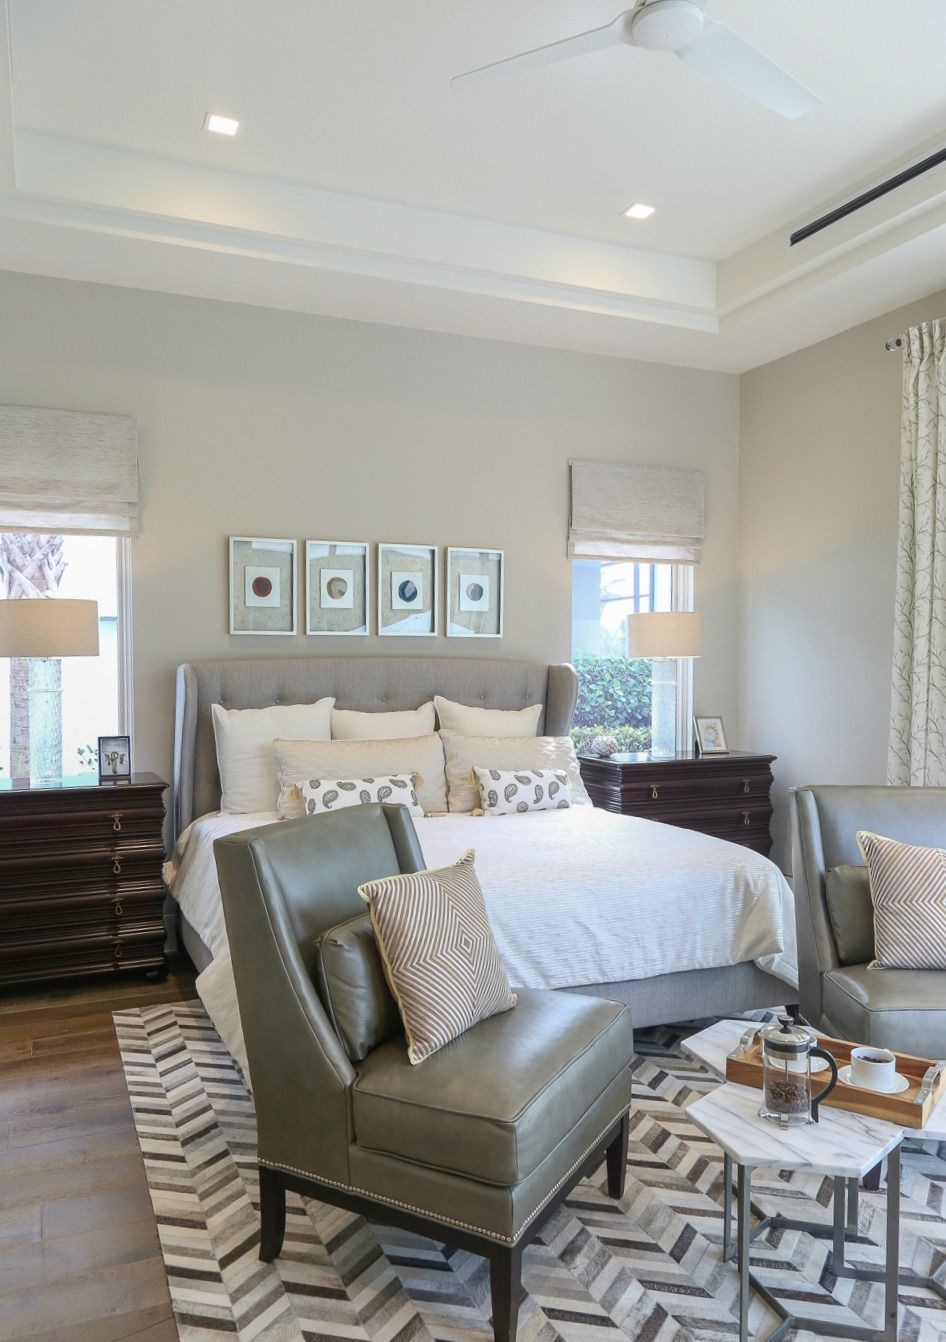 Bedroom Wall Color Is Sherwin Williams Worldly Gray Bedroom